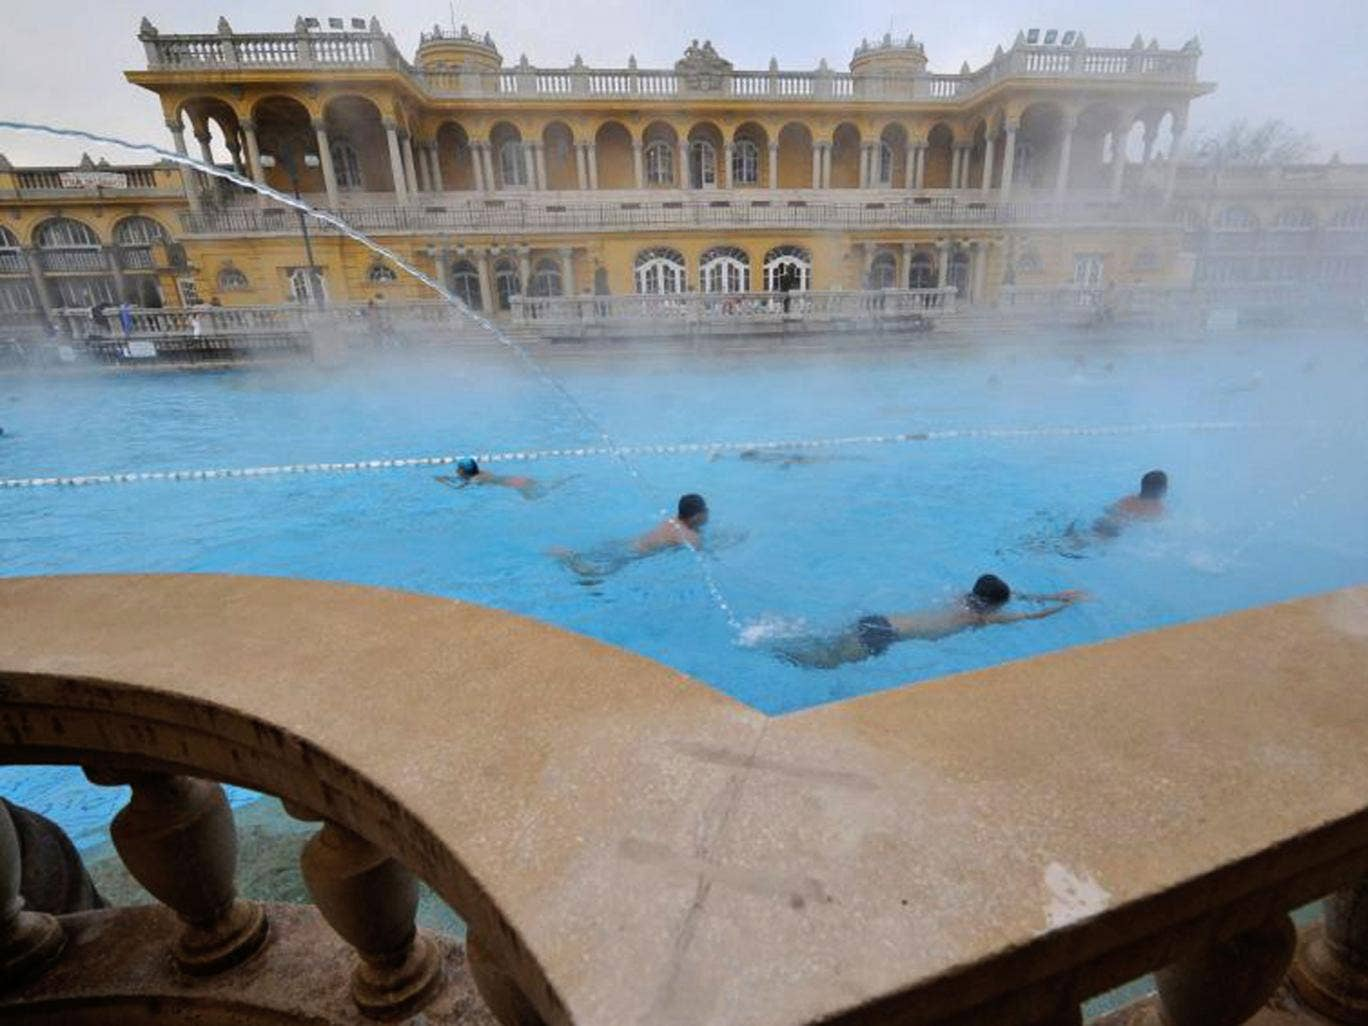 In hot water: one of Budapest's many thermal baths